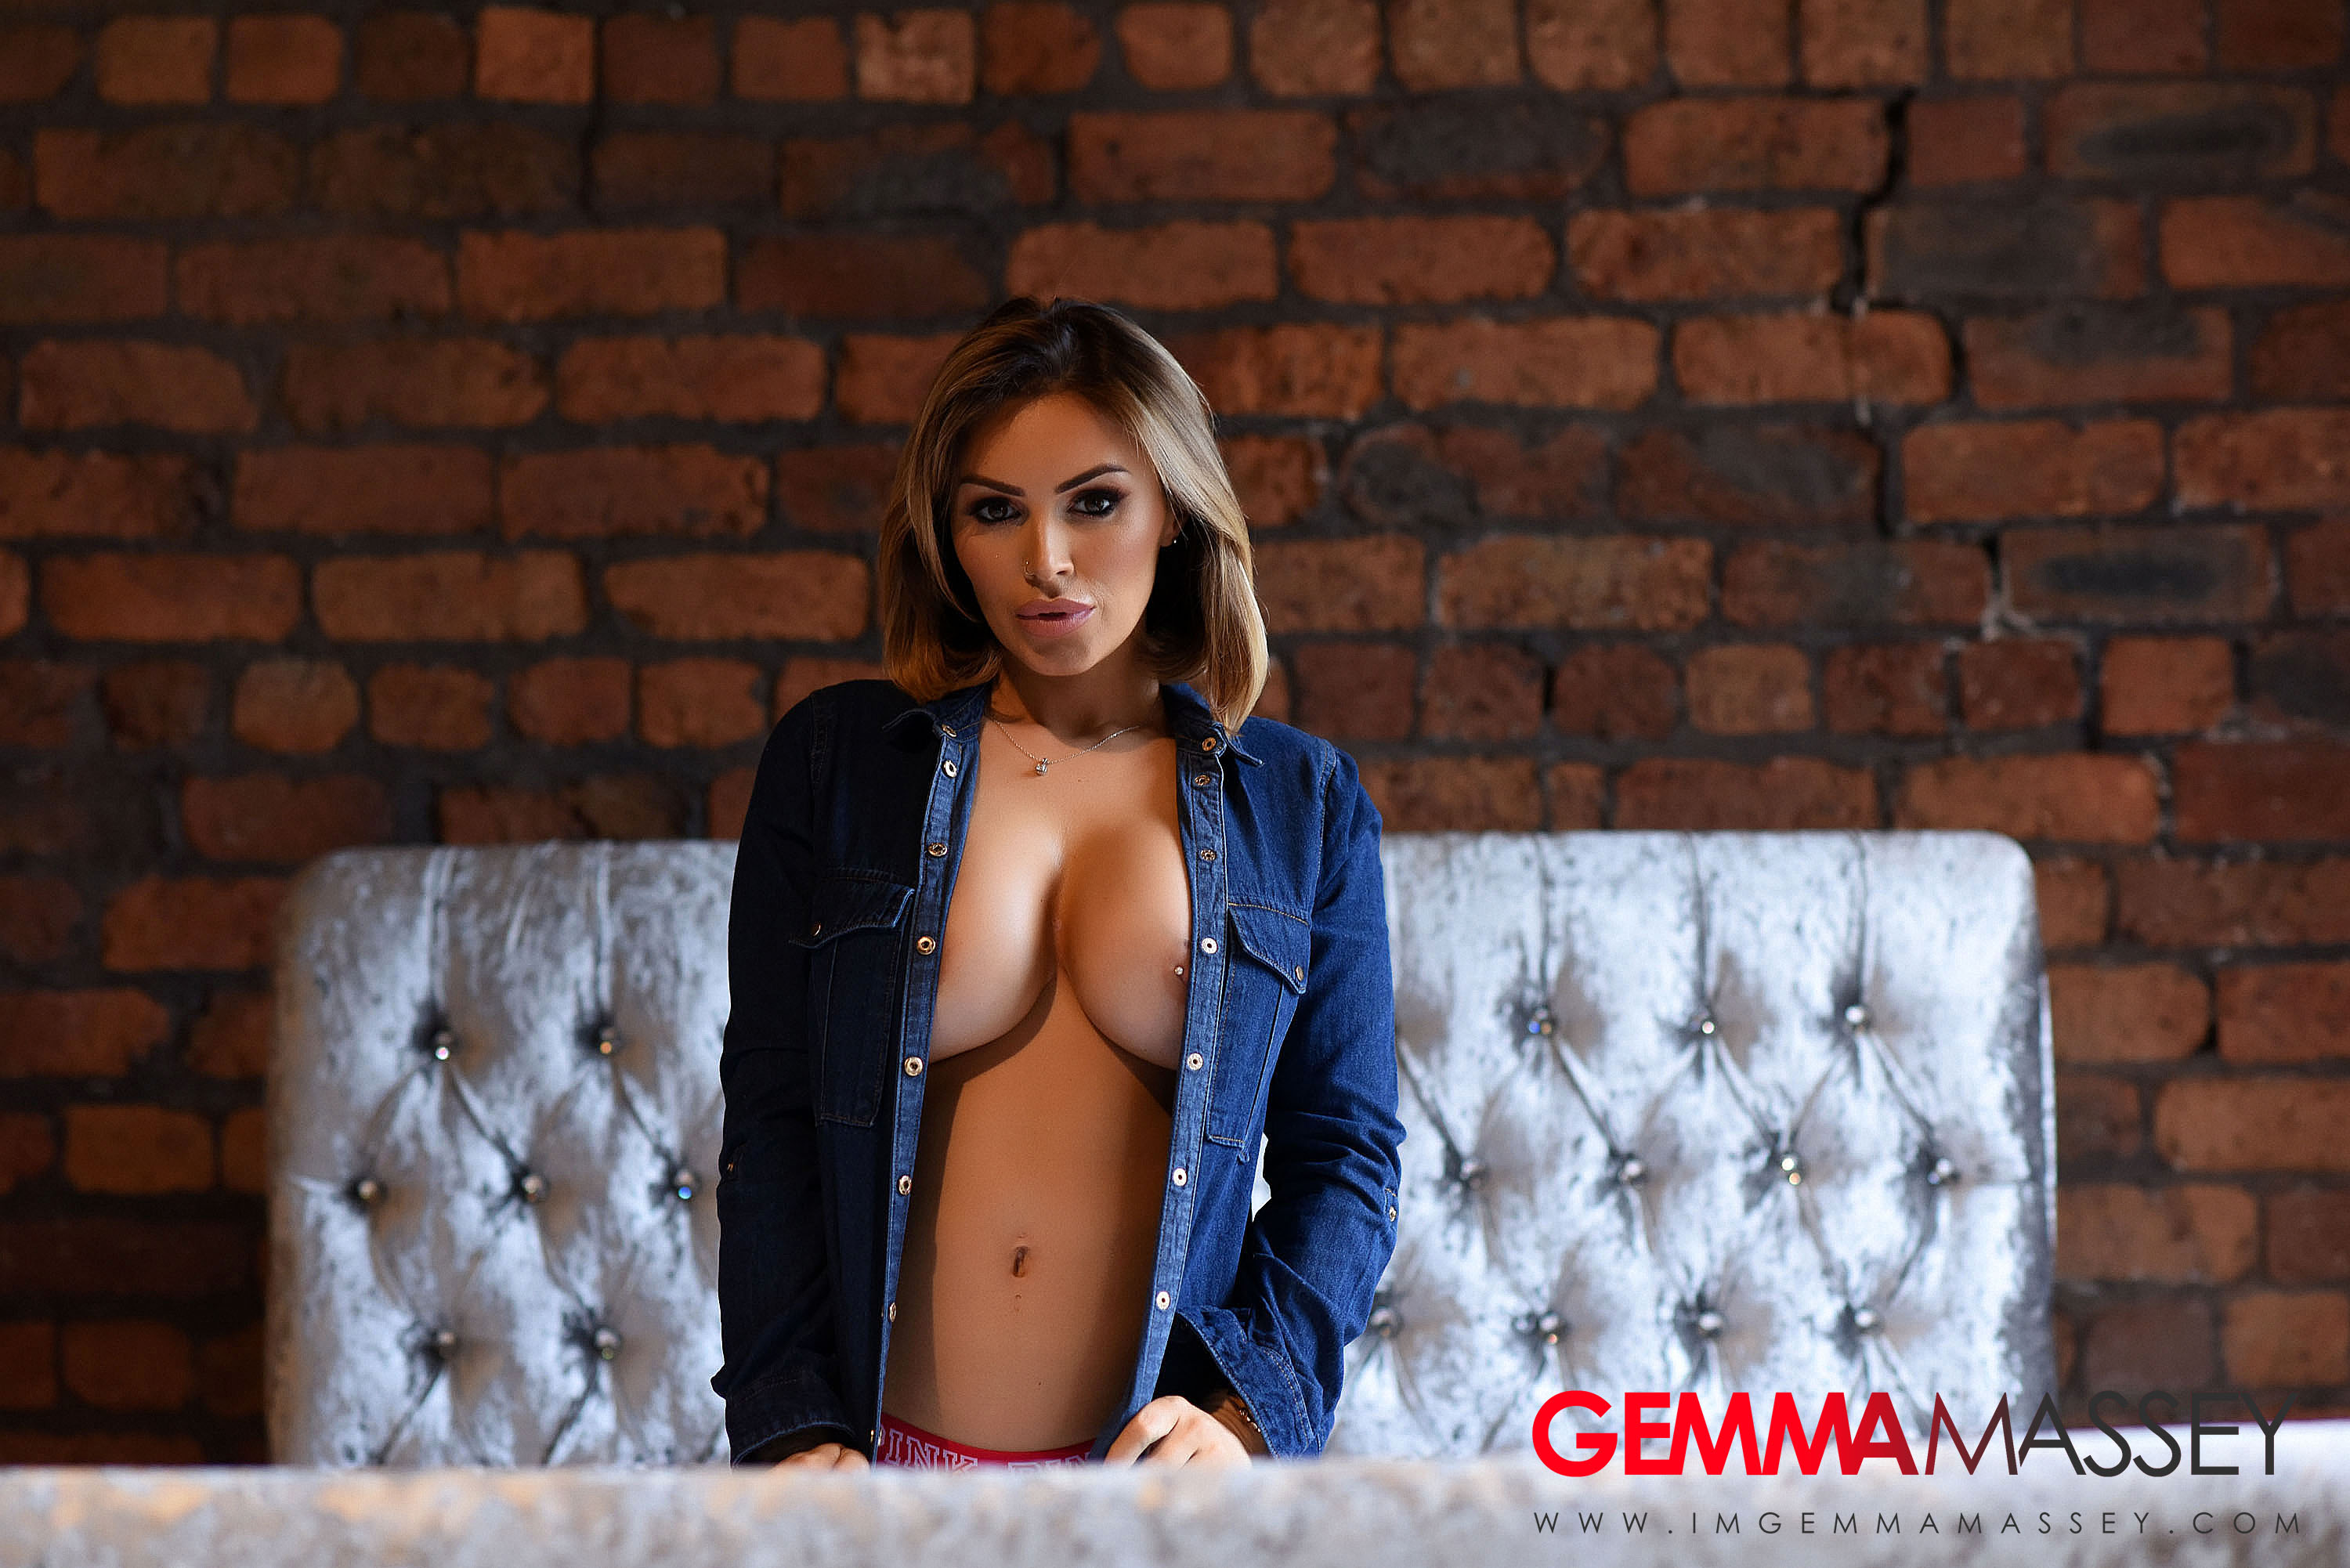 Gemma Massey Big Boobs Get Naked from a Denim Shirt